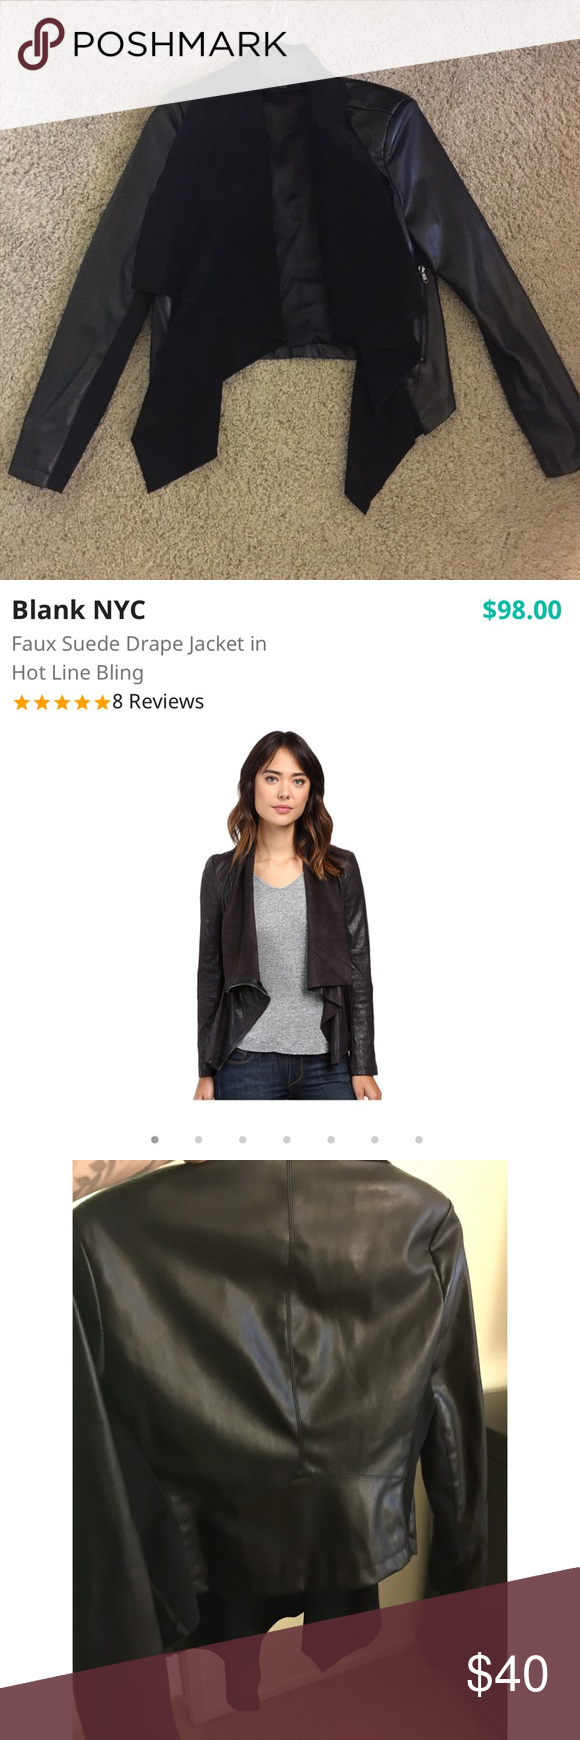 Blank NYC Faux Leather and Suede Jacket Size M Blank NYC Vegan Leather and Suede drape Jacket Size Medium. Soft silky lining. Super cute and fitting. Excellent condition! Blank NYC Jackets & Coats Blazers